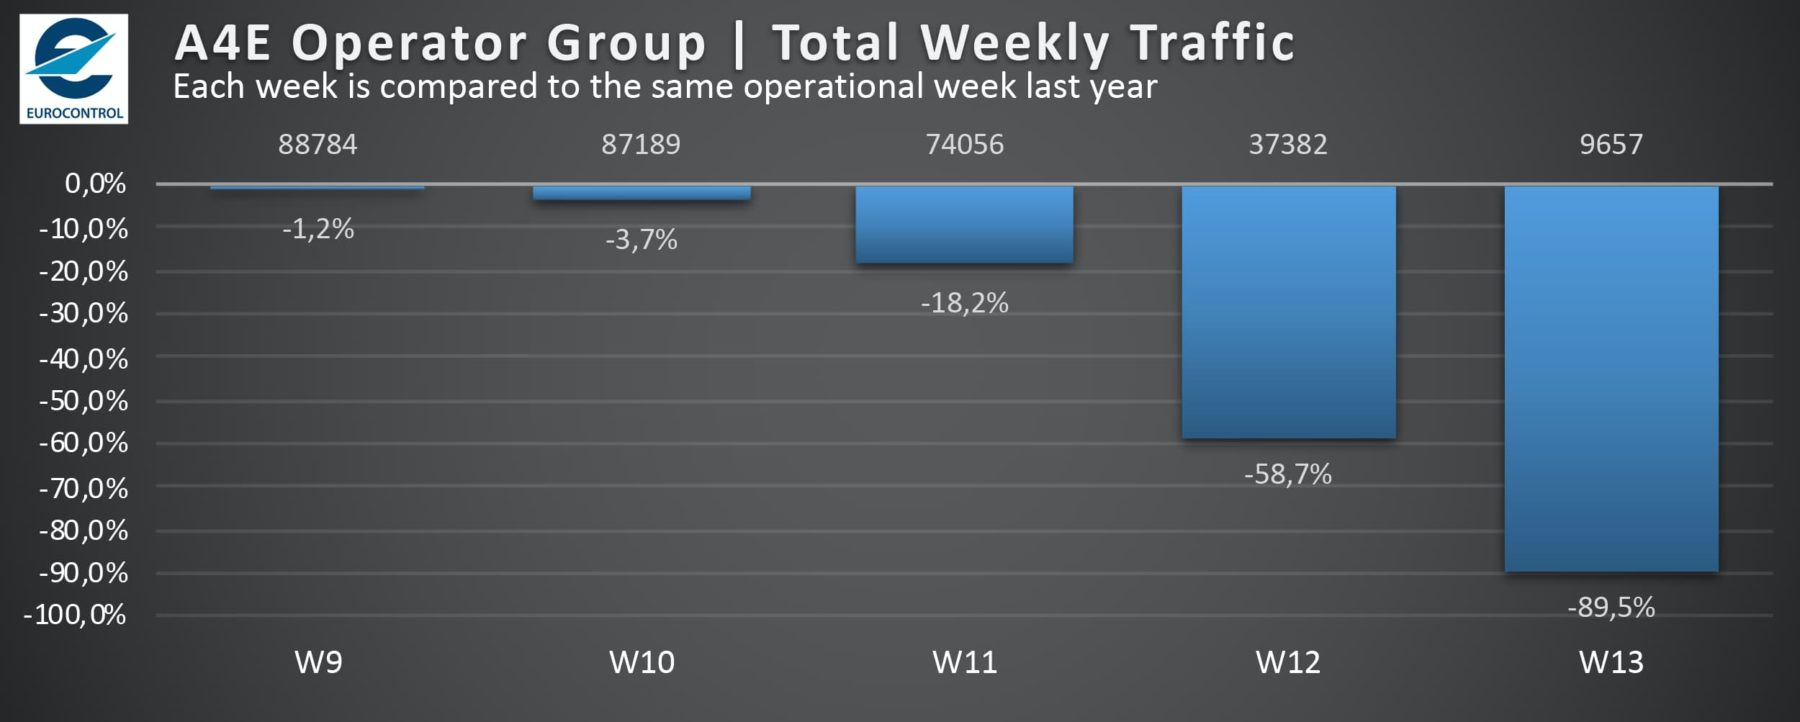 A4E Operator Group, Total Weekly Traffic 2020-03-29